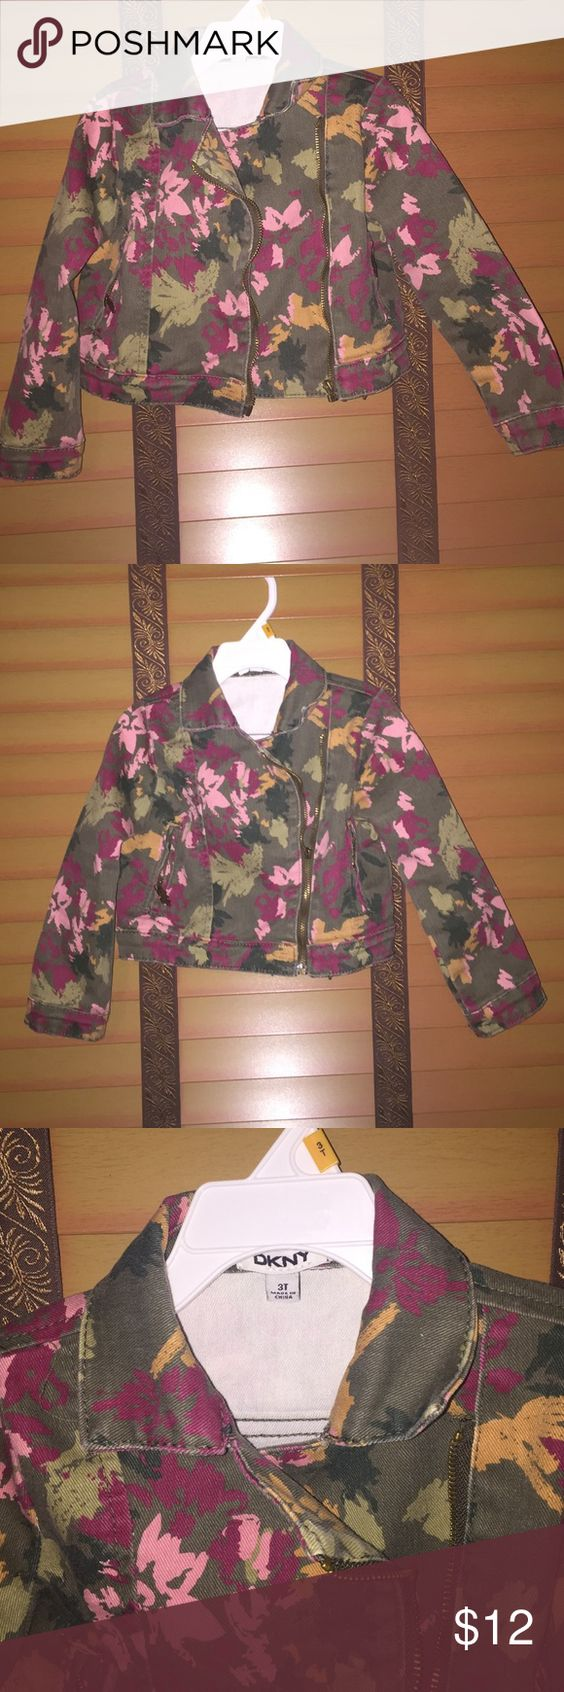 DKNY Denim camo print jacket Size 3T camo print denim jacket. Cute and very trendy. Great to accessorize any outfit. Worn a few times DKNY Jackets & Coats Jean Jackets